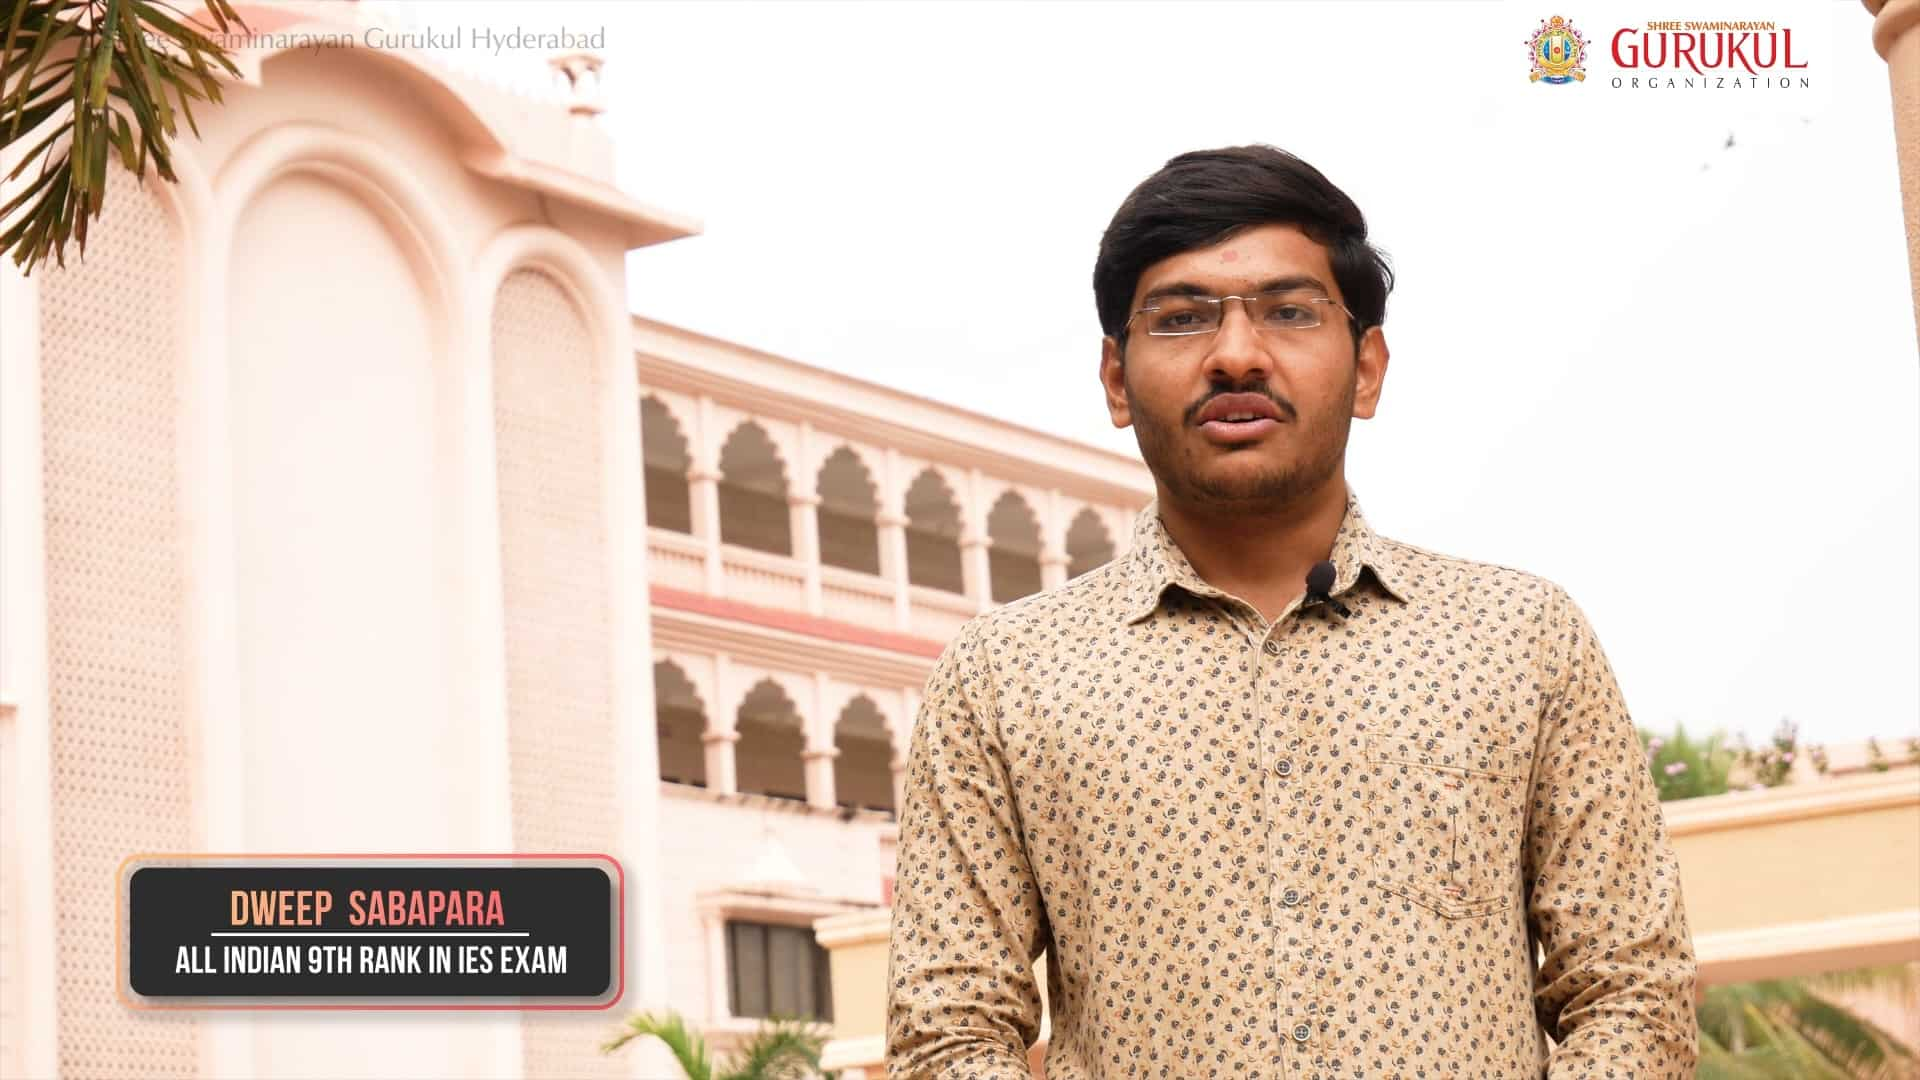 Dweep Sabapara, All Indian 9th rank in IES Exam